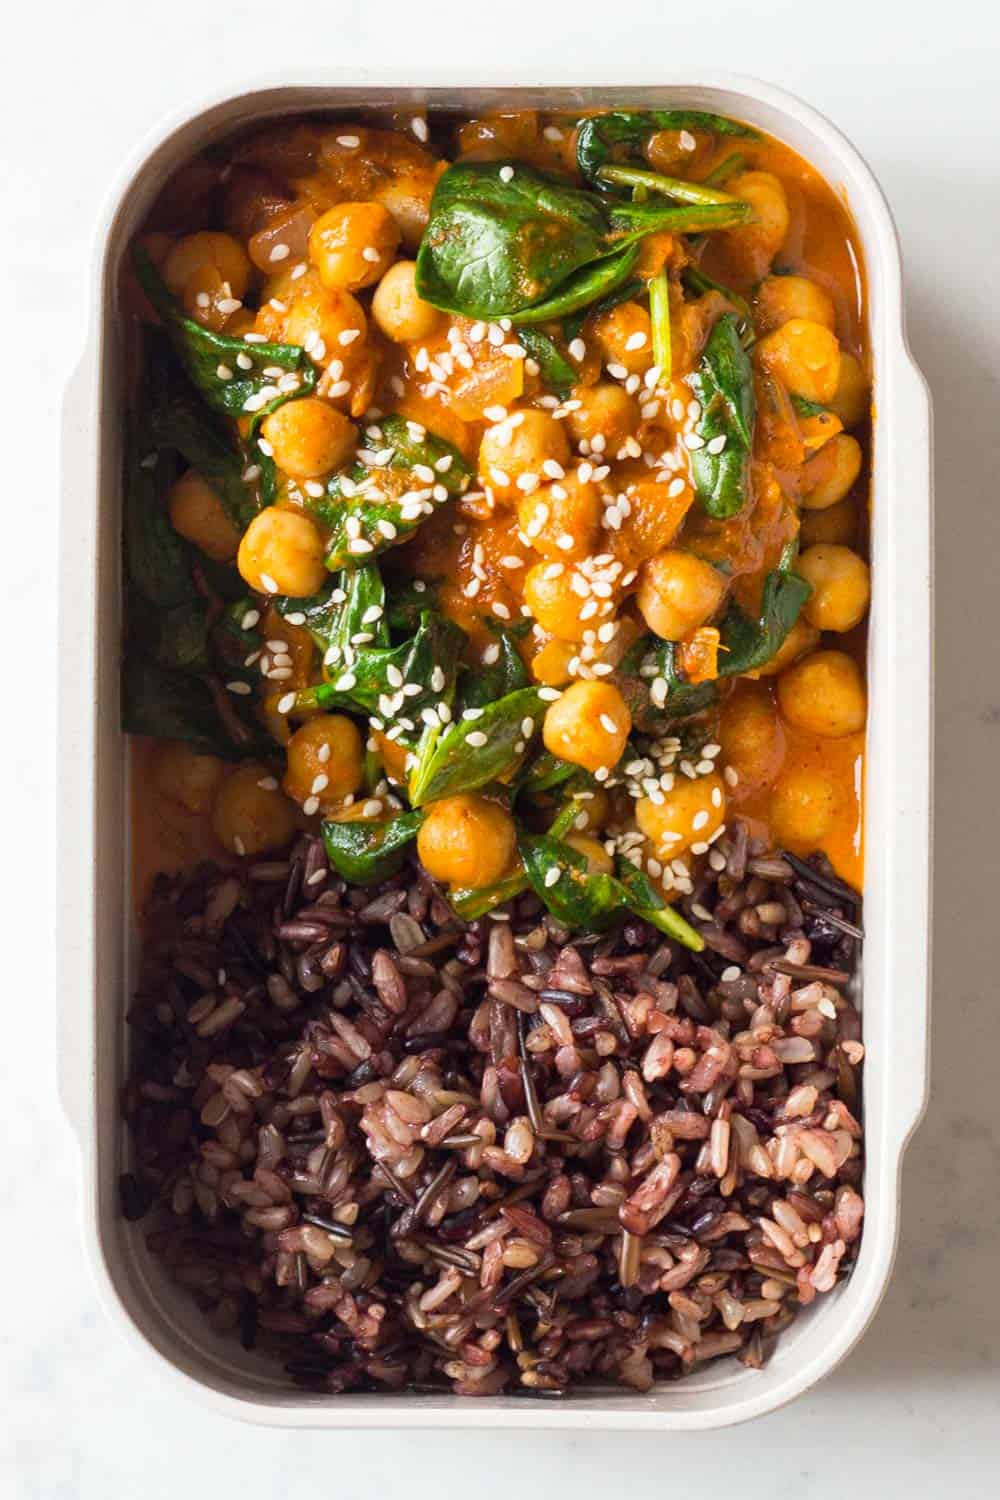 A Vegan Dinner for a Nutritionally-Balanced Vegan Meal Plan - Chickpea Spinach Curry made with coconut milk with wild rice blend on the side.